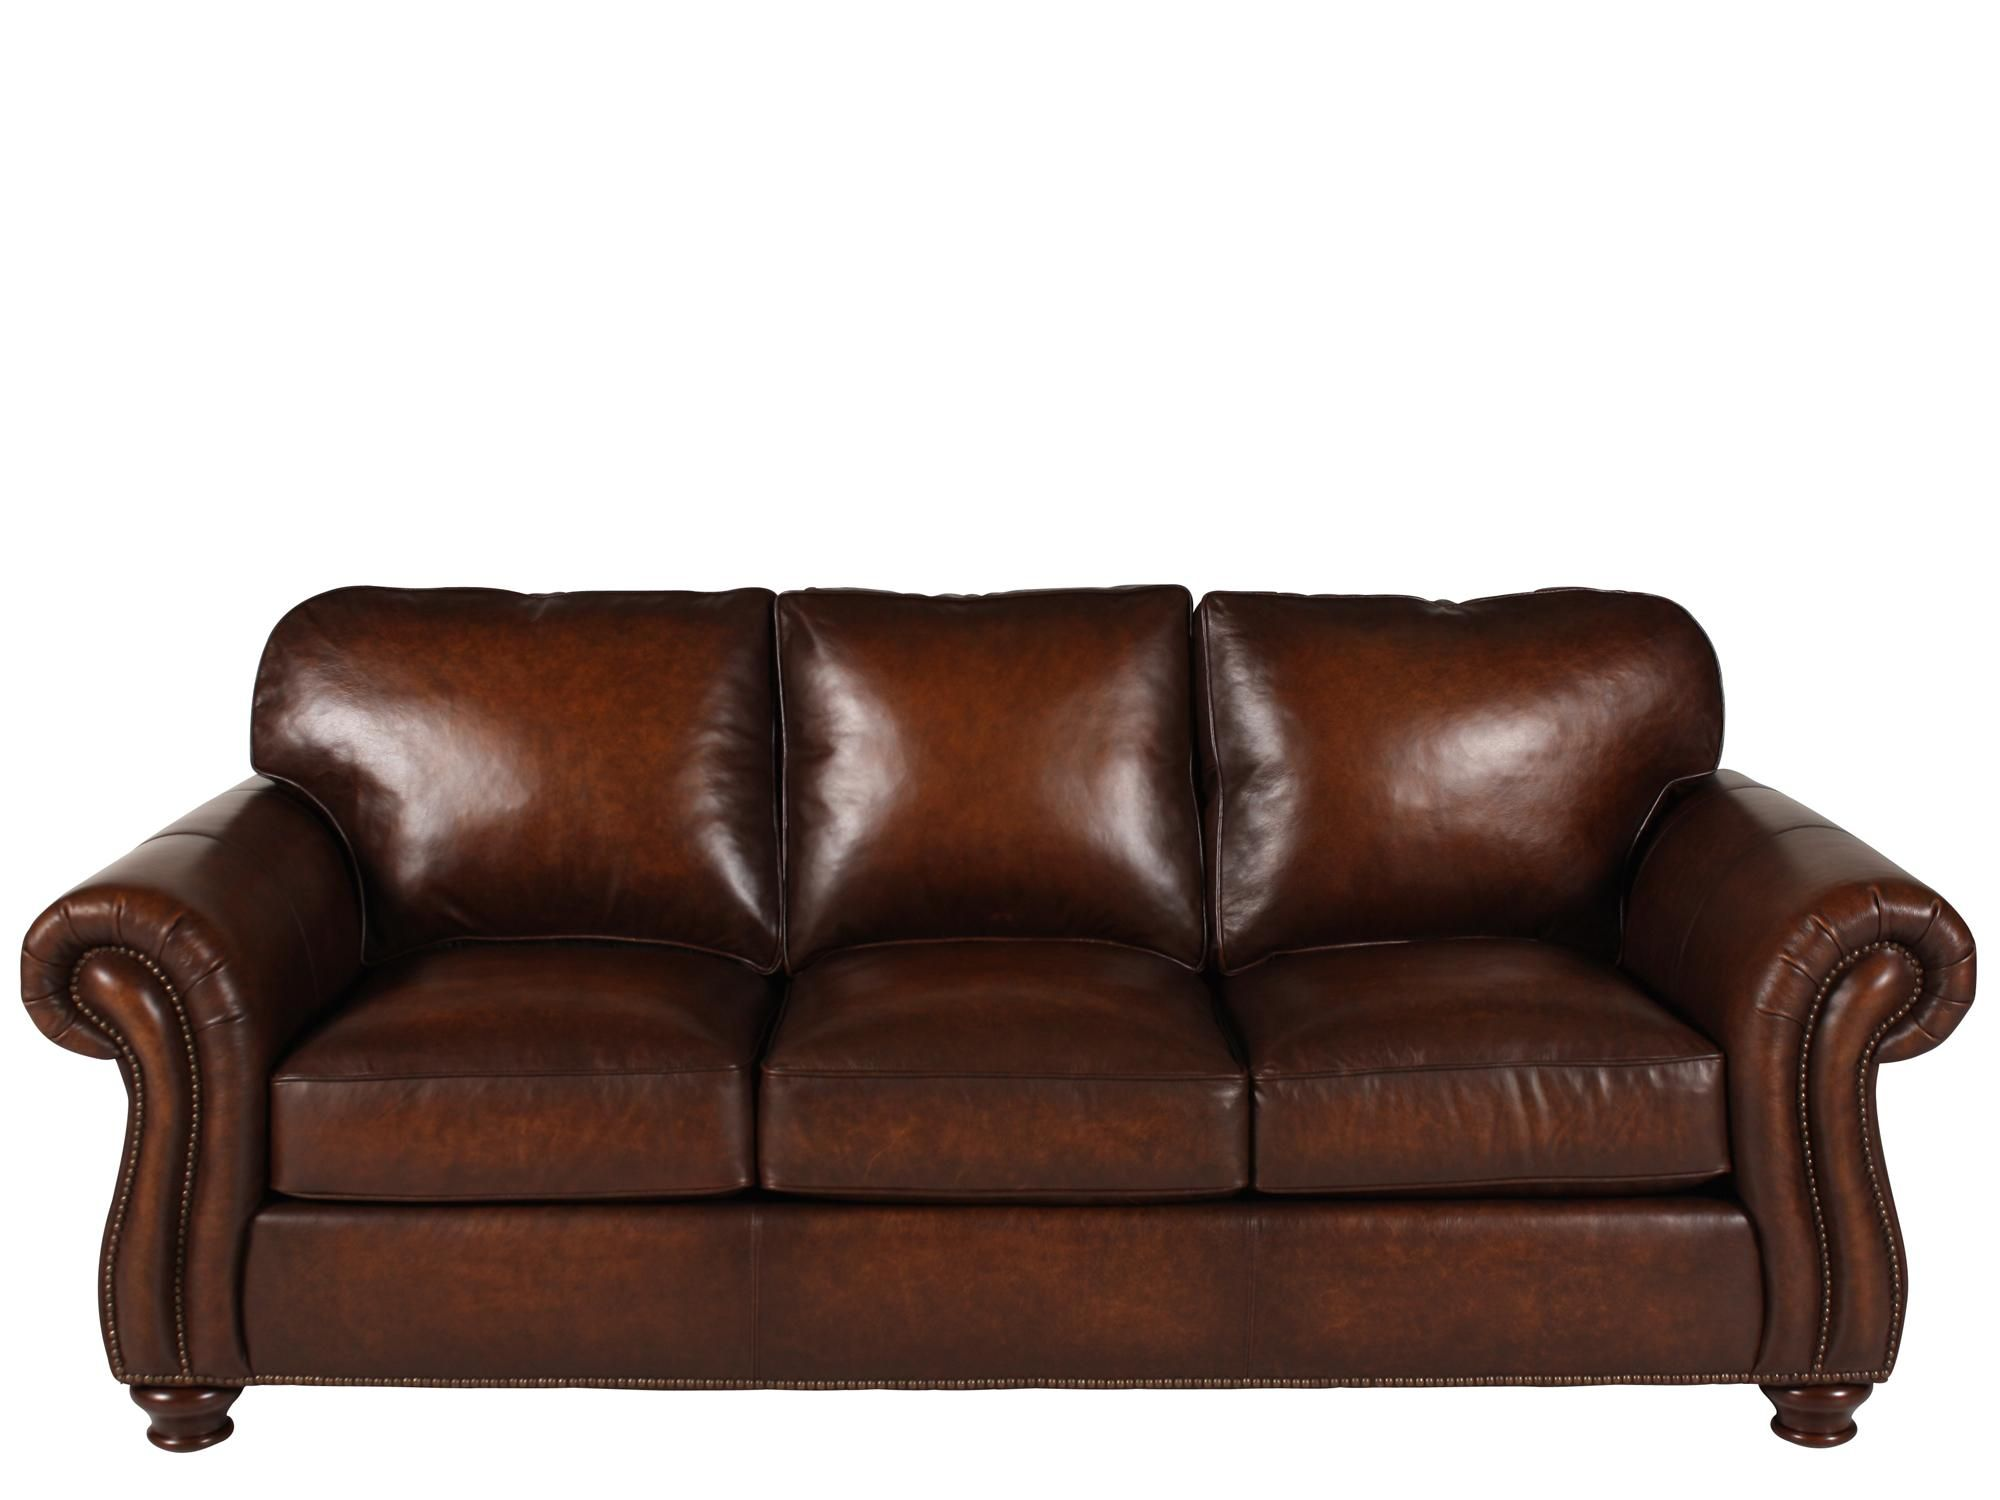 bernhardt leather sofa cushion replacement bo concept cama vincent mathis brothers